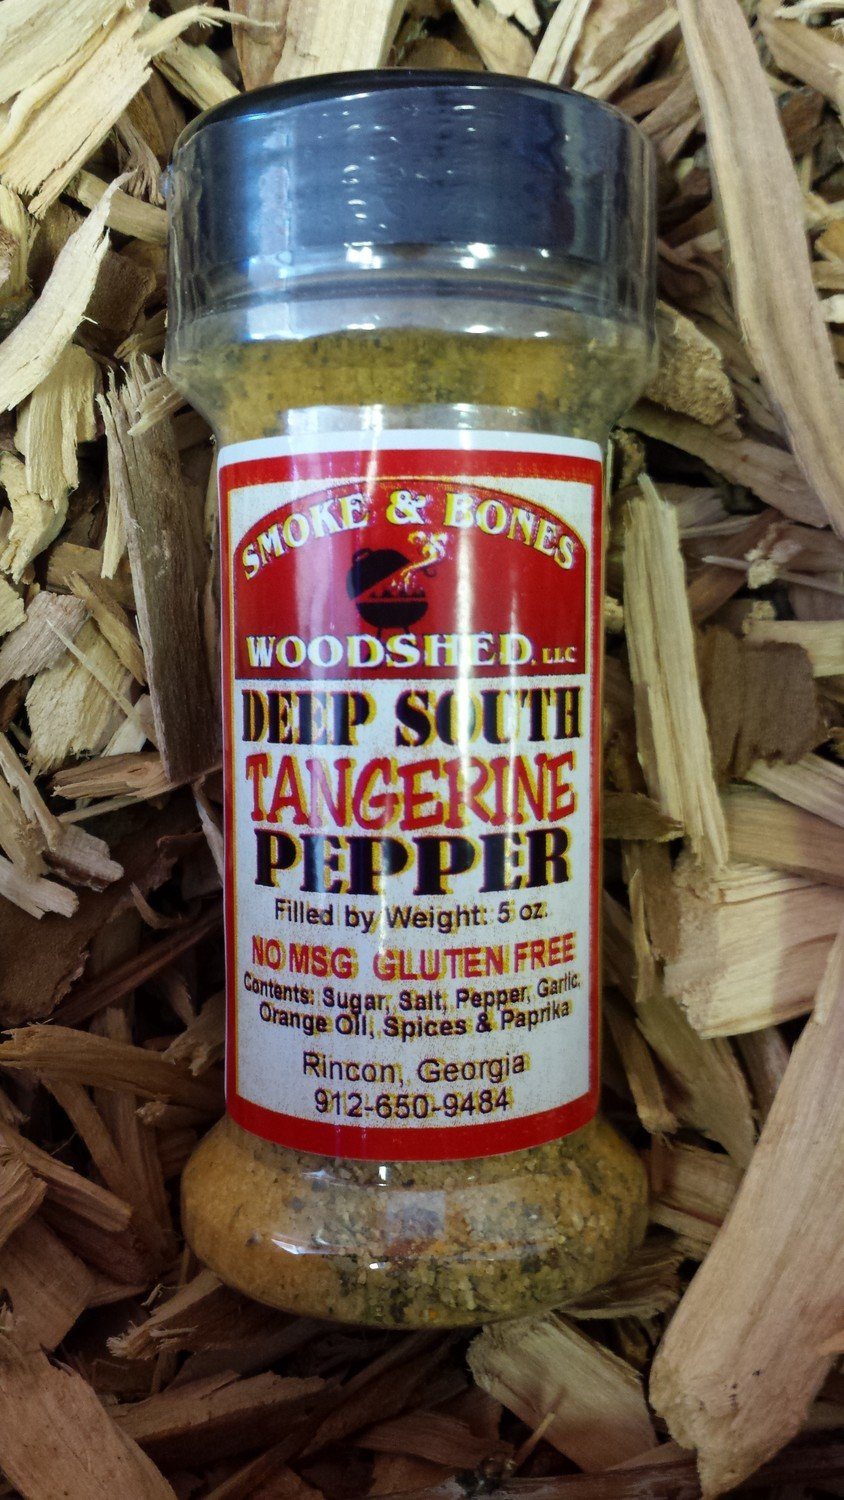 SBW, Deep South Tangerine Pepper Seasoning 5oz